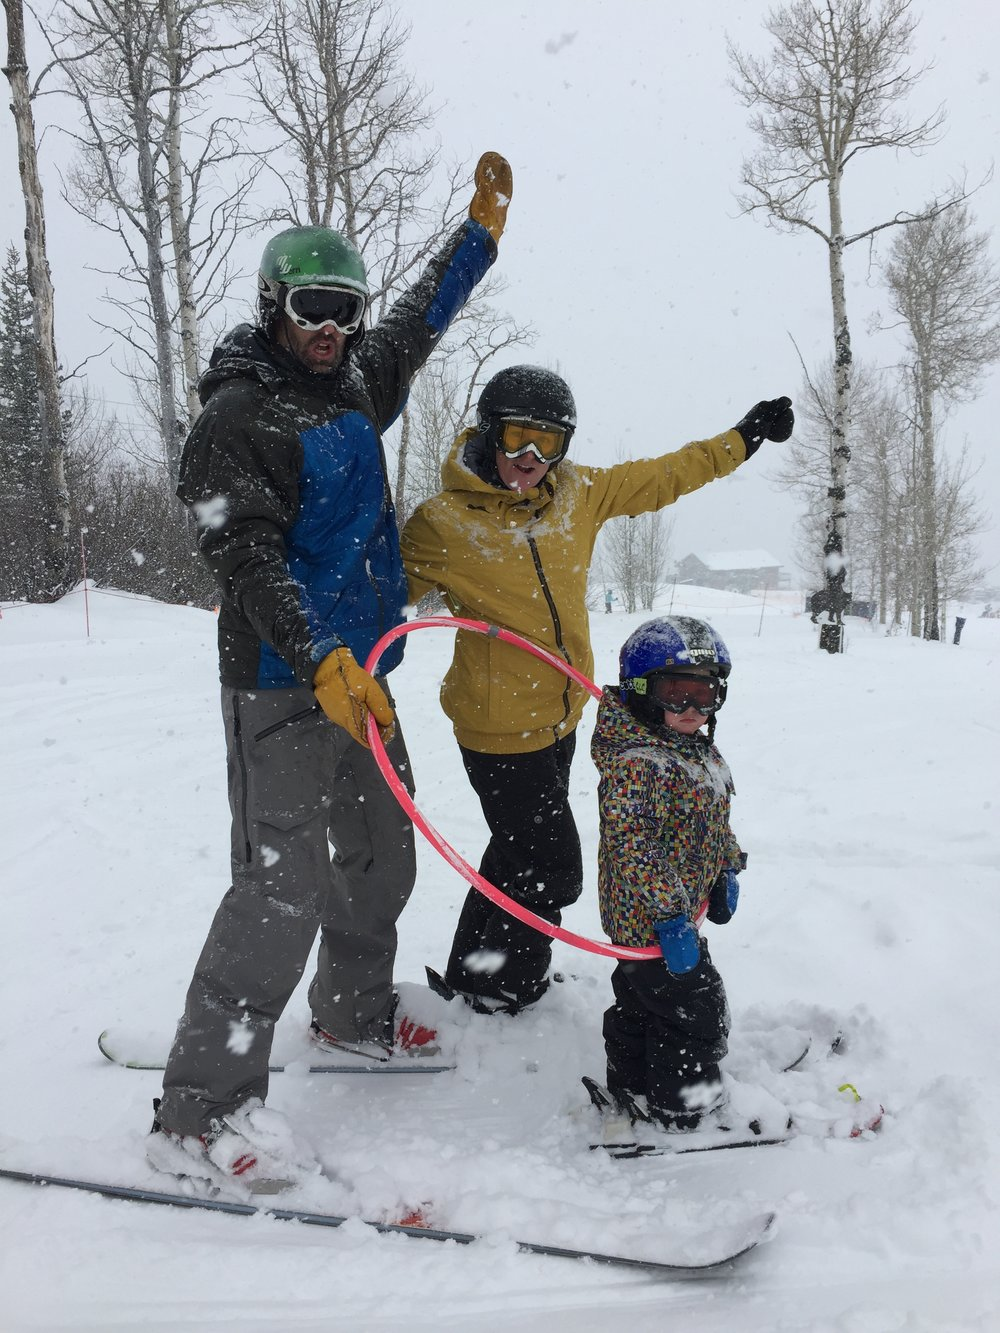 We actually Snowboard but here we are at Powderhorn teaching our son to Ski...